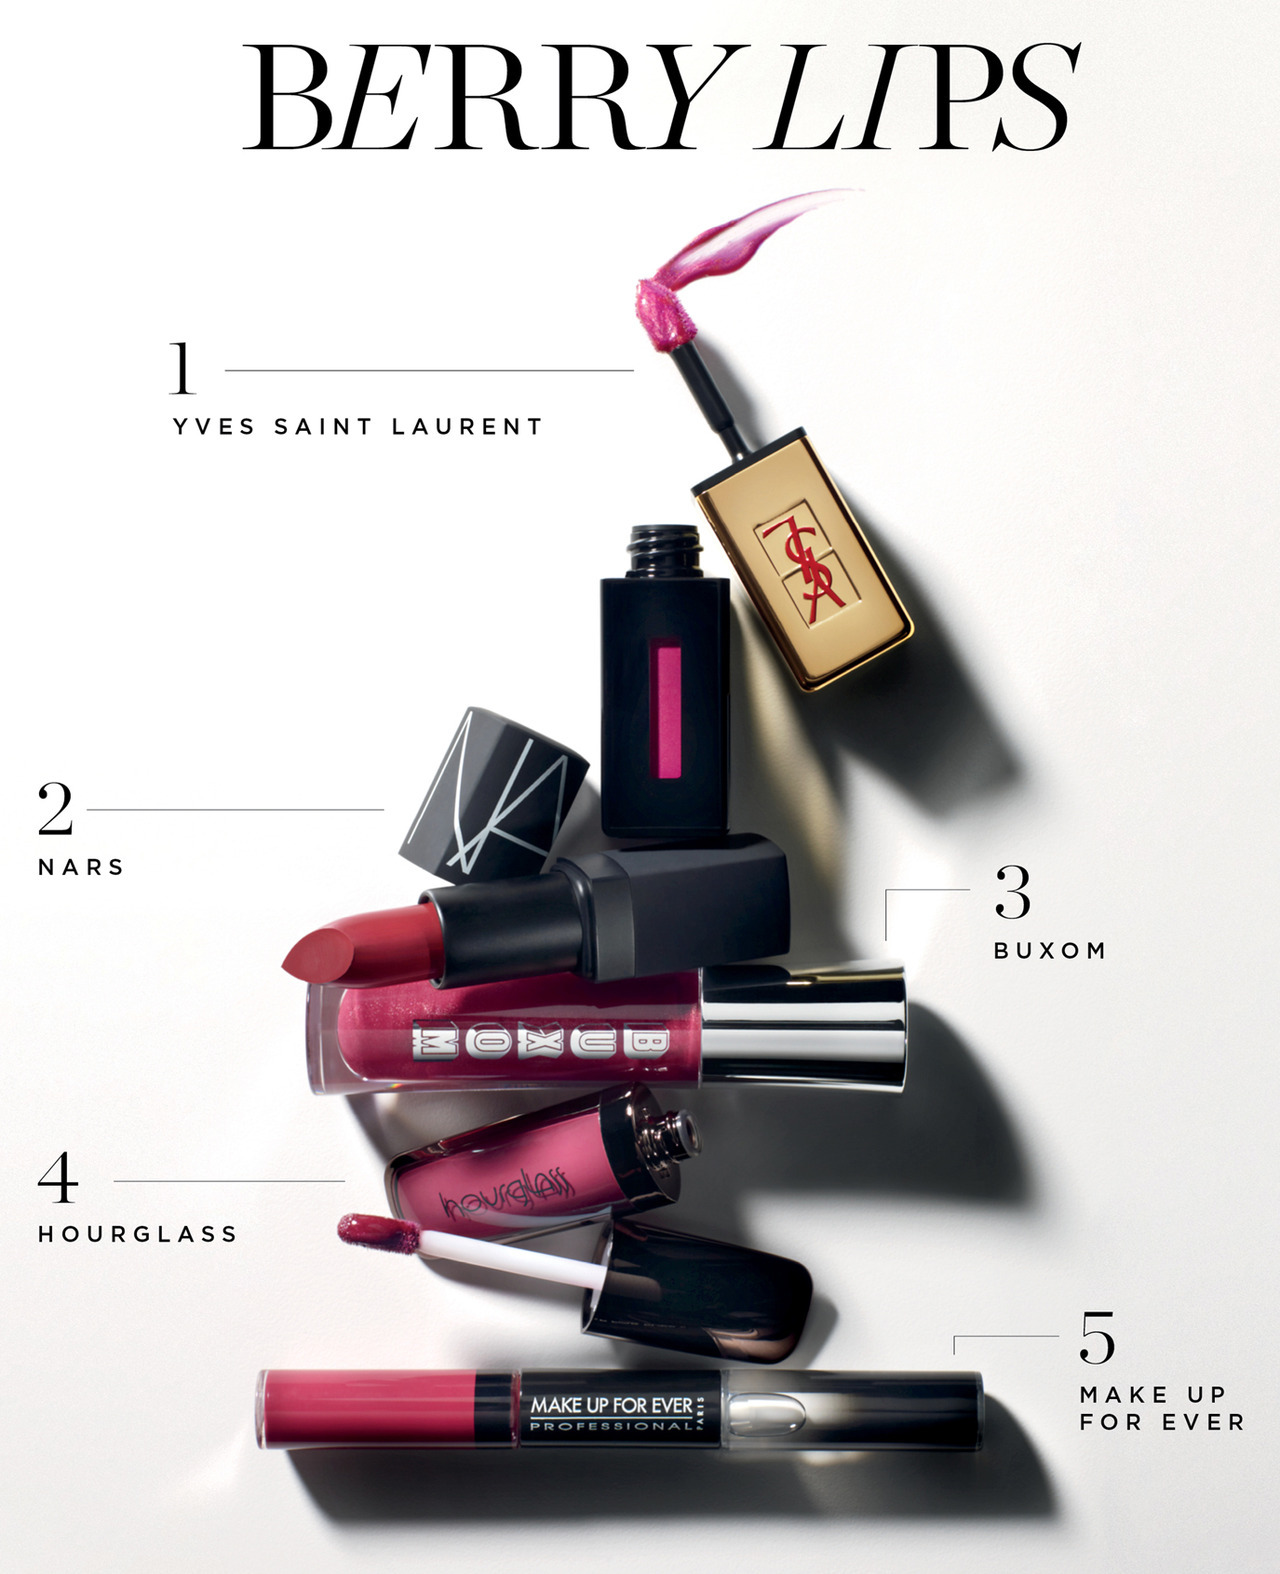 makeuptips-:   sephora:  I cannot wait to get my hands on the YSL Glossy stain this christmas! What are you excited to get from Sephora?